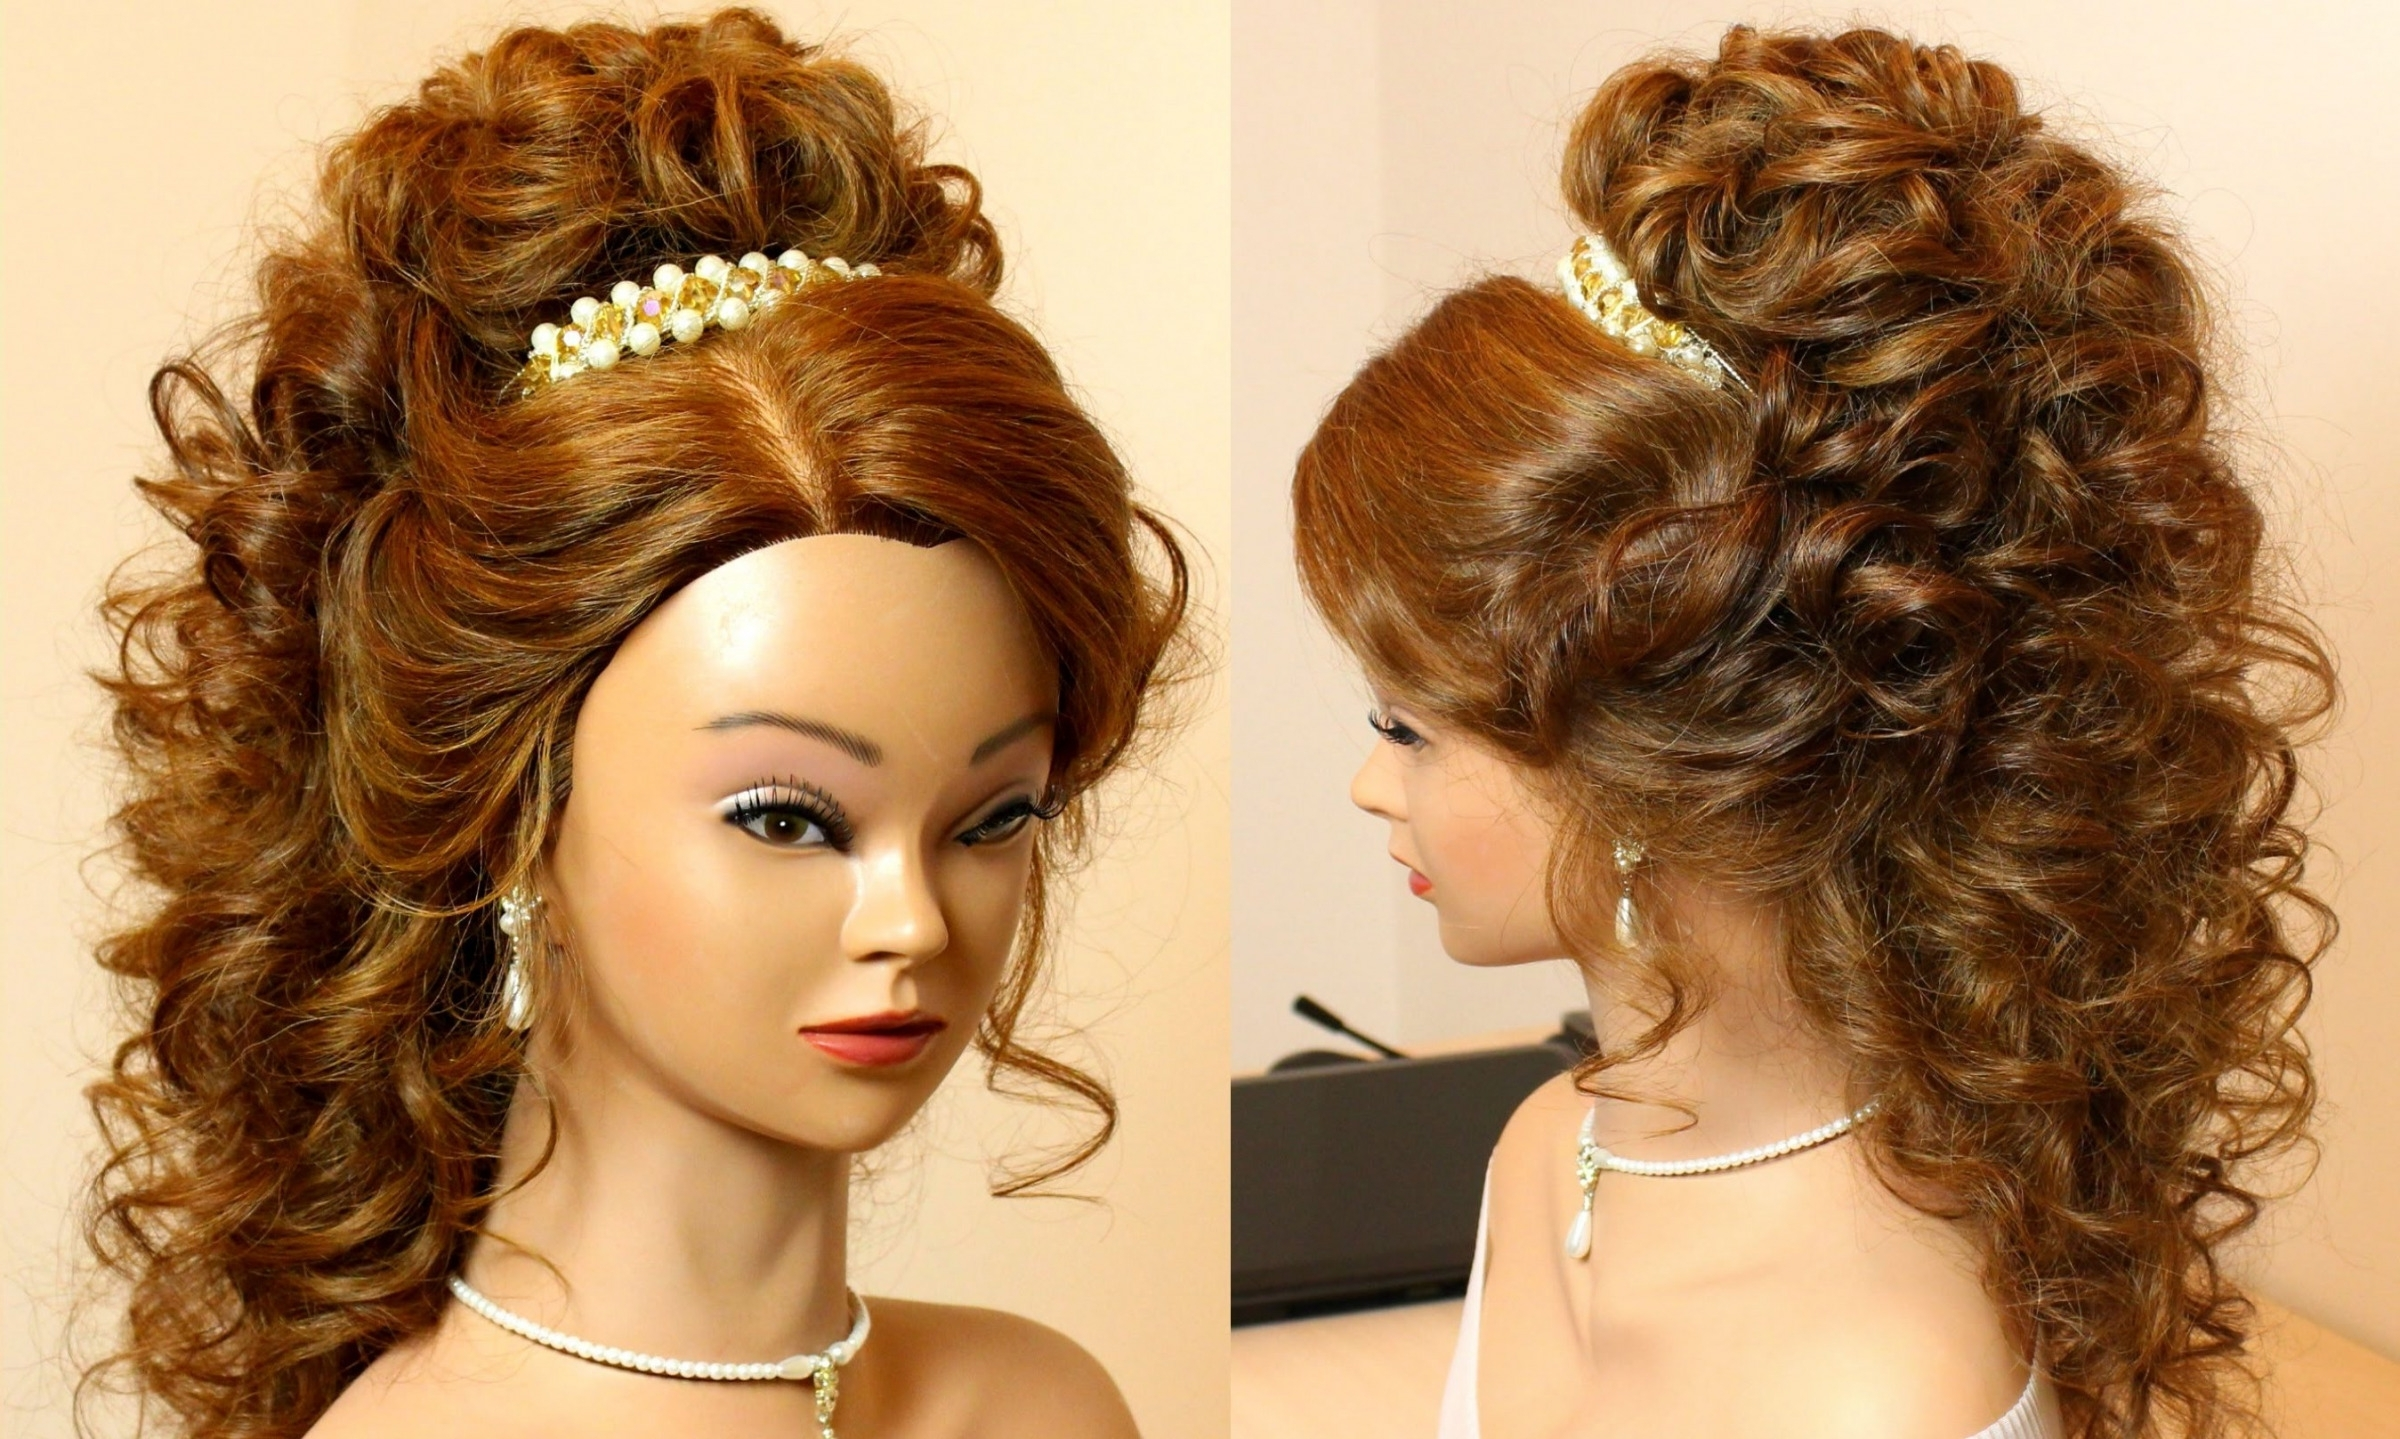 Trendy Wedding Hairstyles For Long Romantic Hair Regarding Romantic Wedding Hairstyle For Long Hair Tutorial Sensational Prom (View 15 of 15)